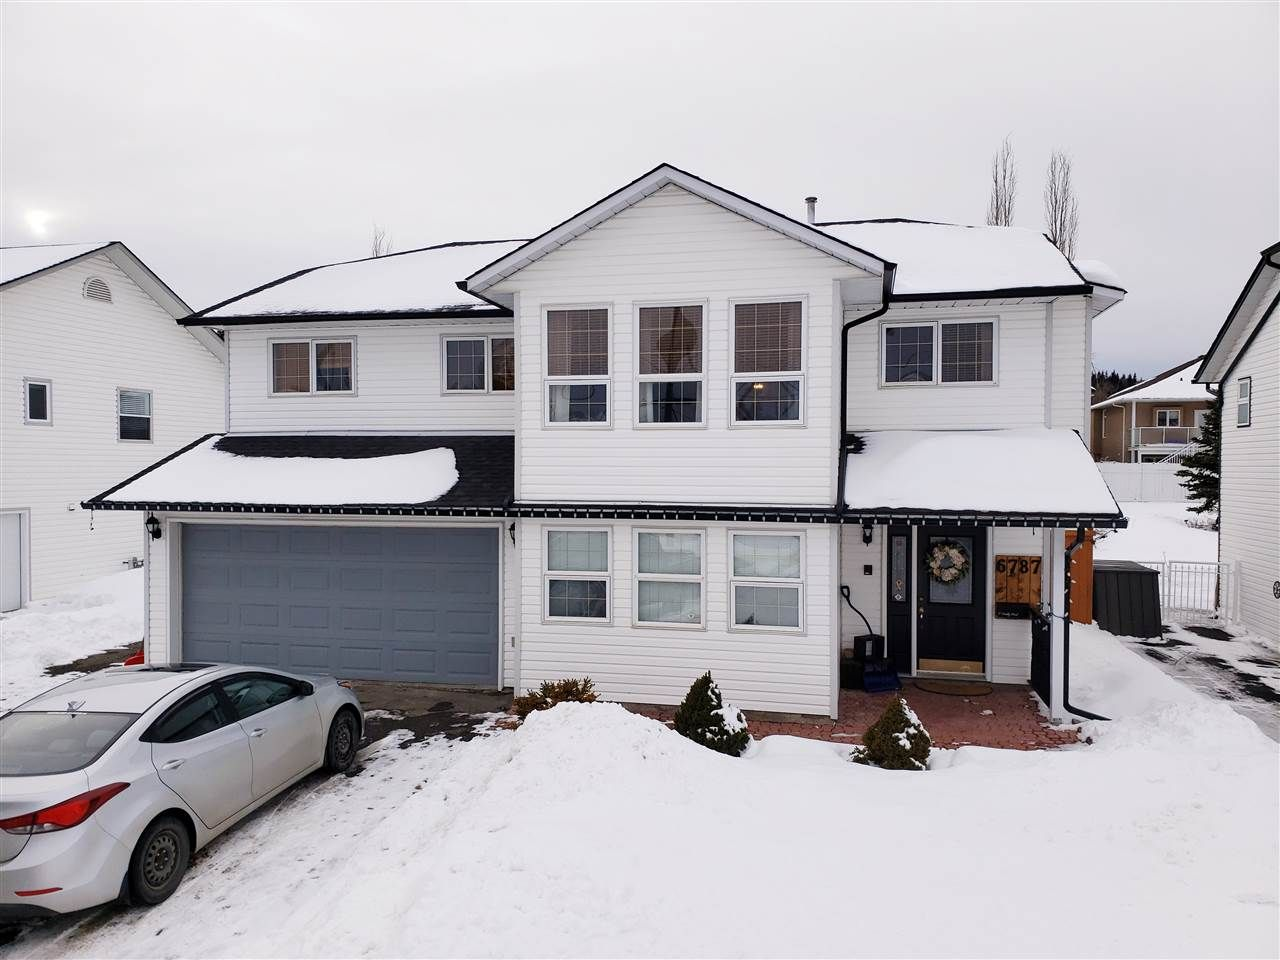 Main Photo: 6787 O'GRADY Road in Prince George: St. Lawrence Heights House for sale (PG City South (Zone 74))  : MLS®# R2435399